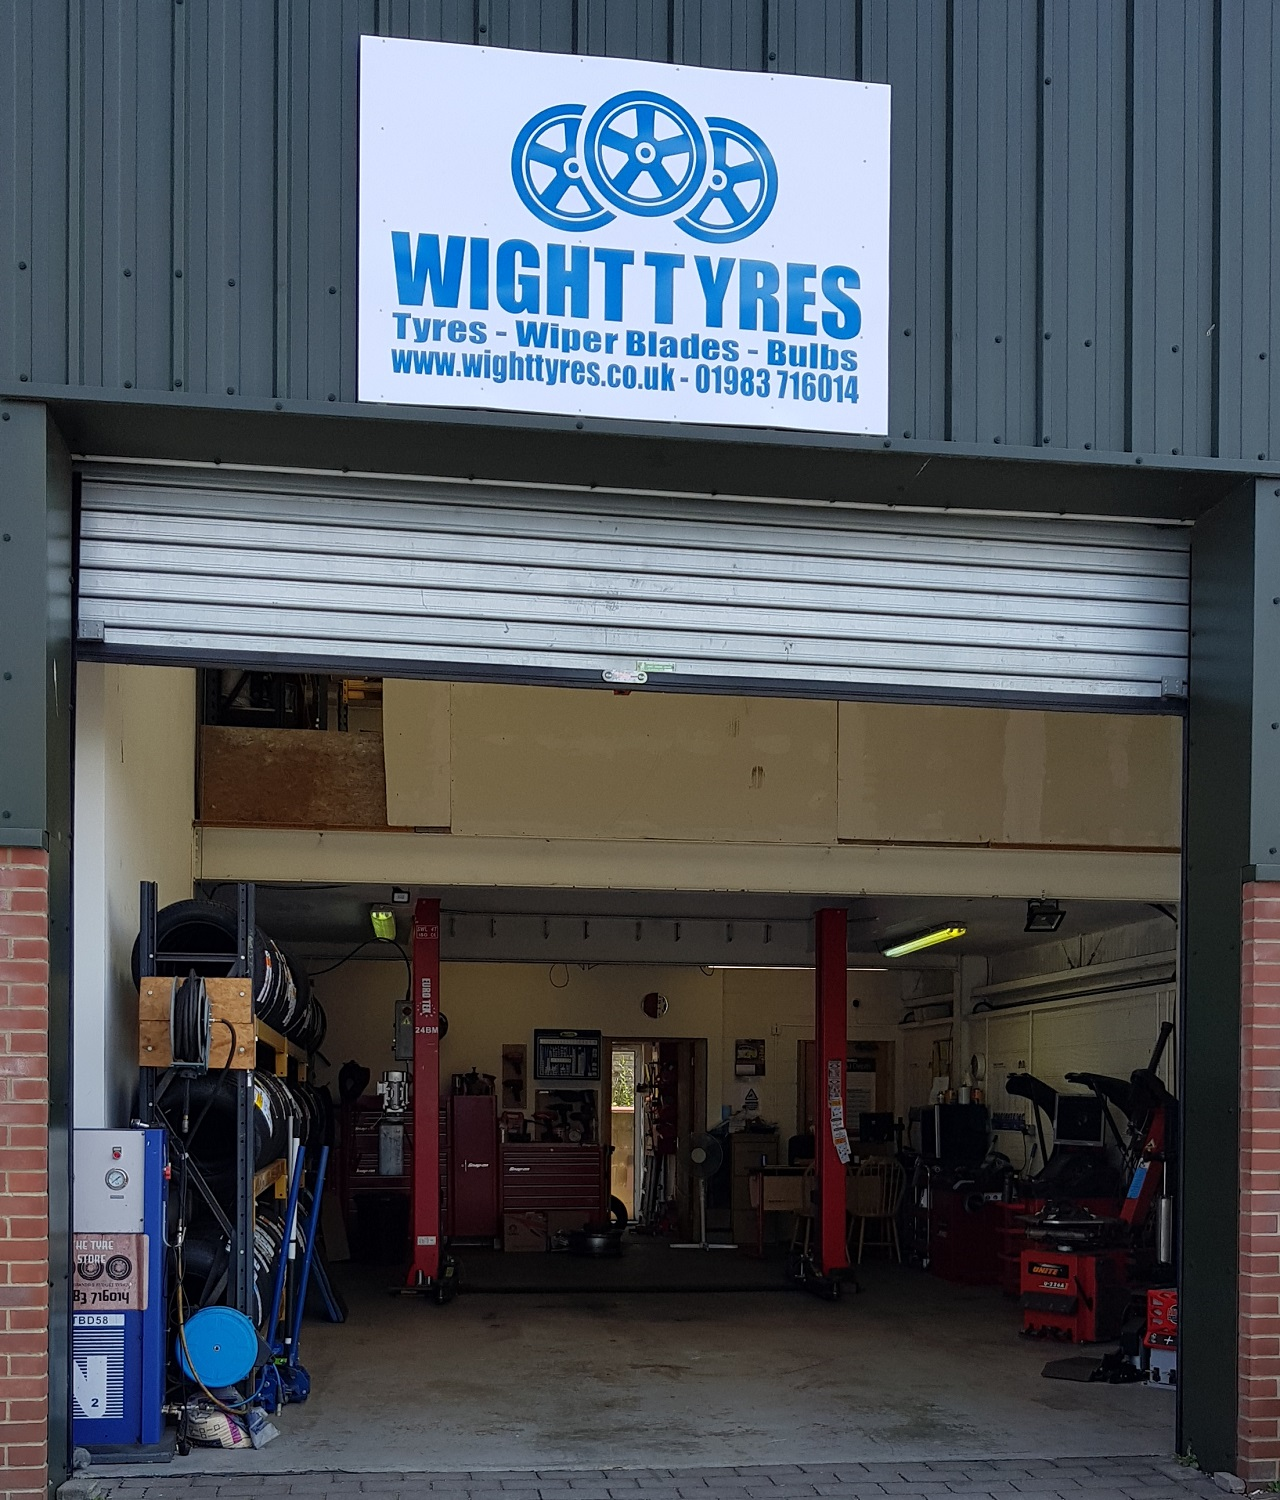 About Wight Tyres We are a local Isle of Wight Tyre centre based in Ryde supplying and fitting tyres of all brands since 2013.